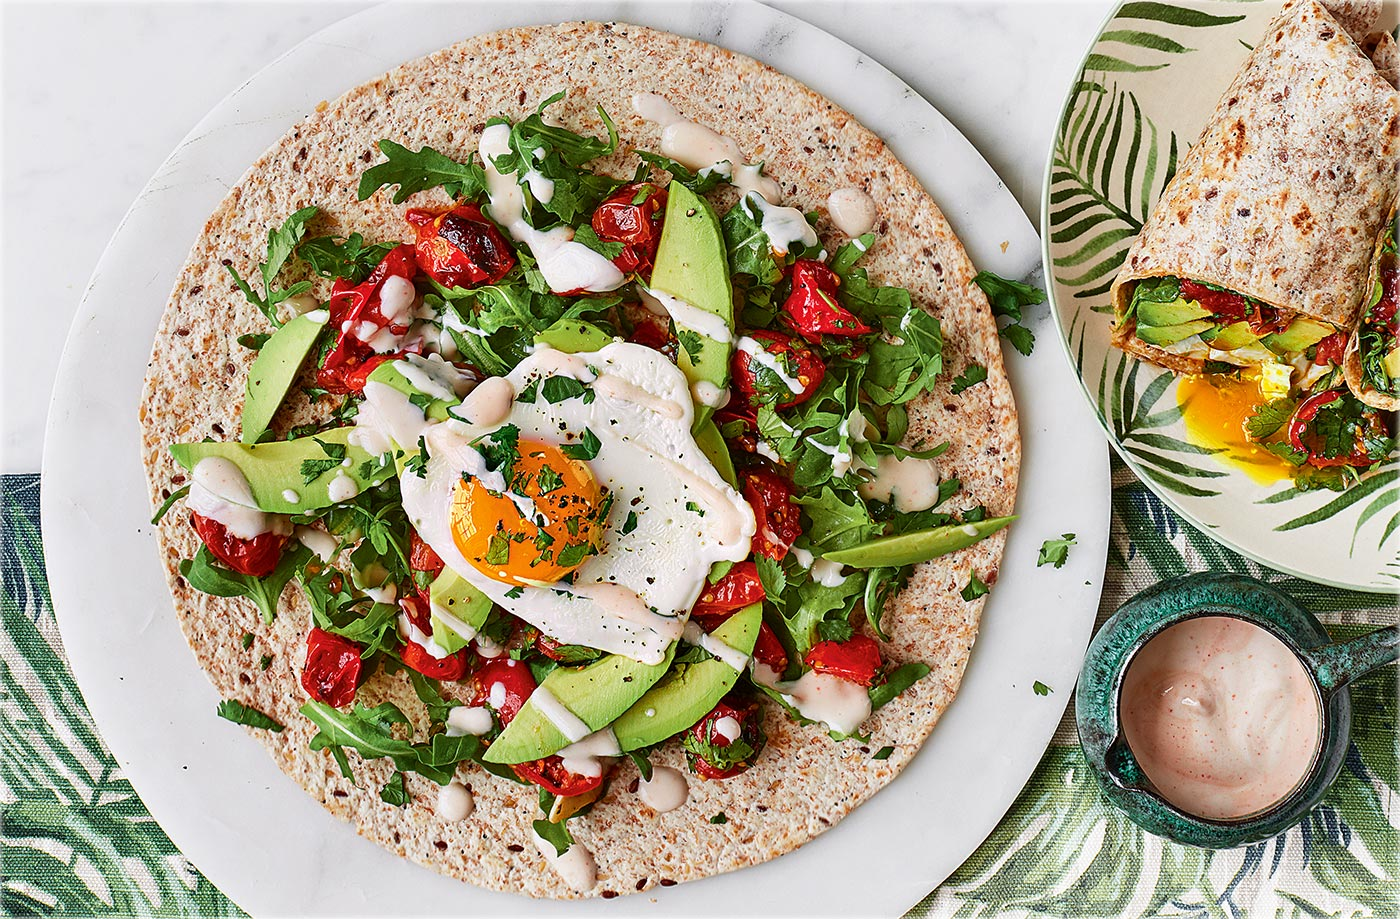 Vegetarian recipes vegetarian meal ideas tesco real food avocado and egg breakfast burrito forumfinder Images